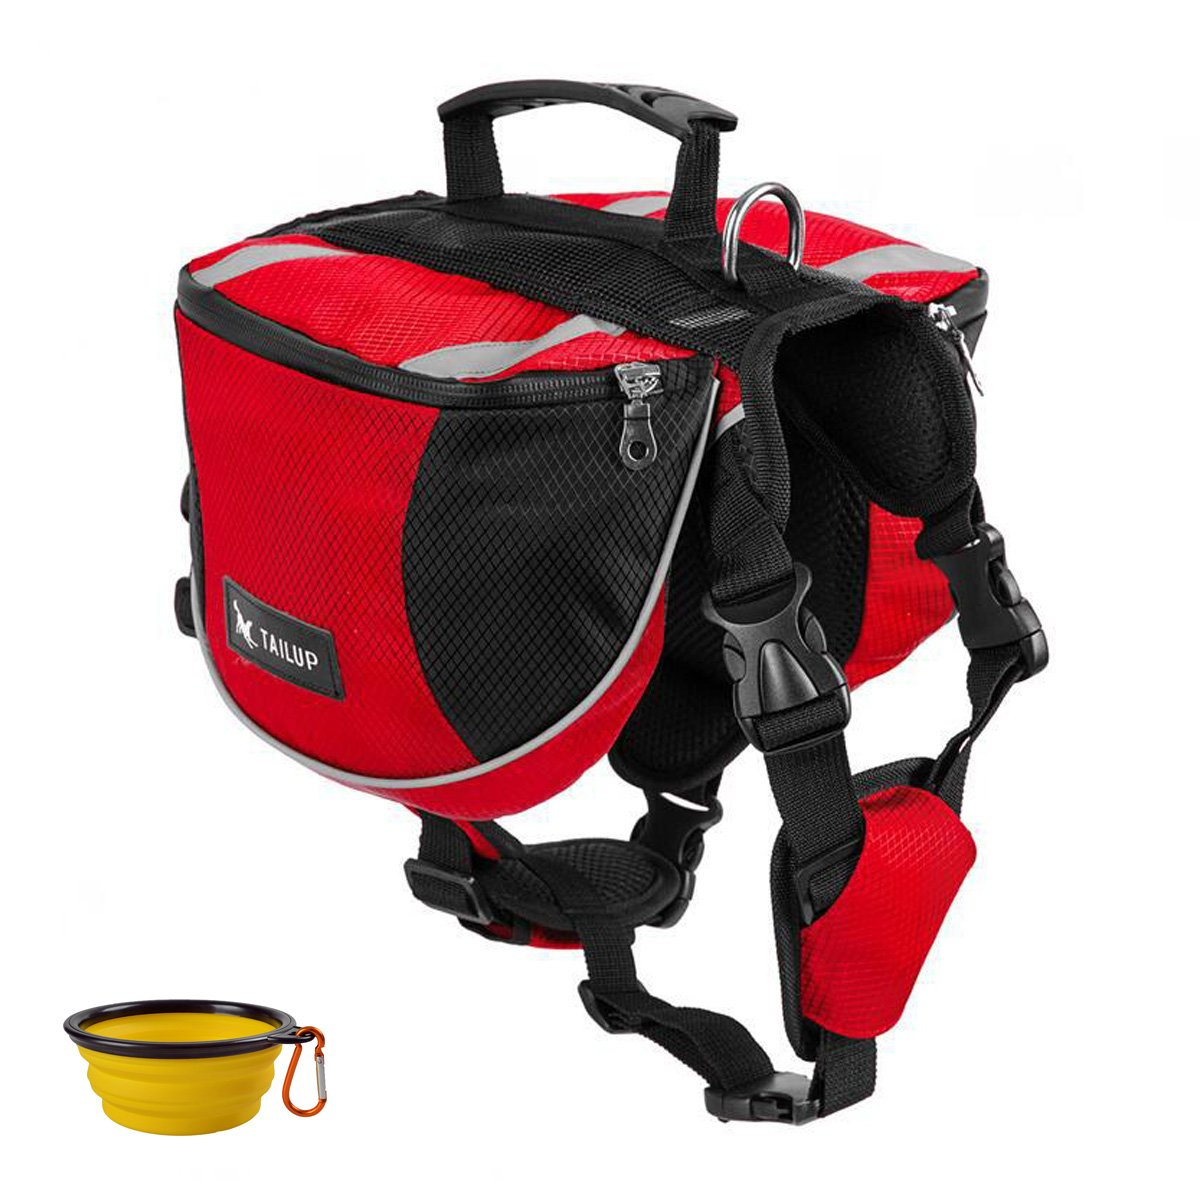 GrayCell Dog Saddlebags Hound Travel Hiking Camping Backpack for Medium Large Dogs (Red,L) by GrayCell